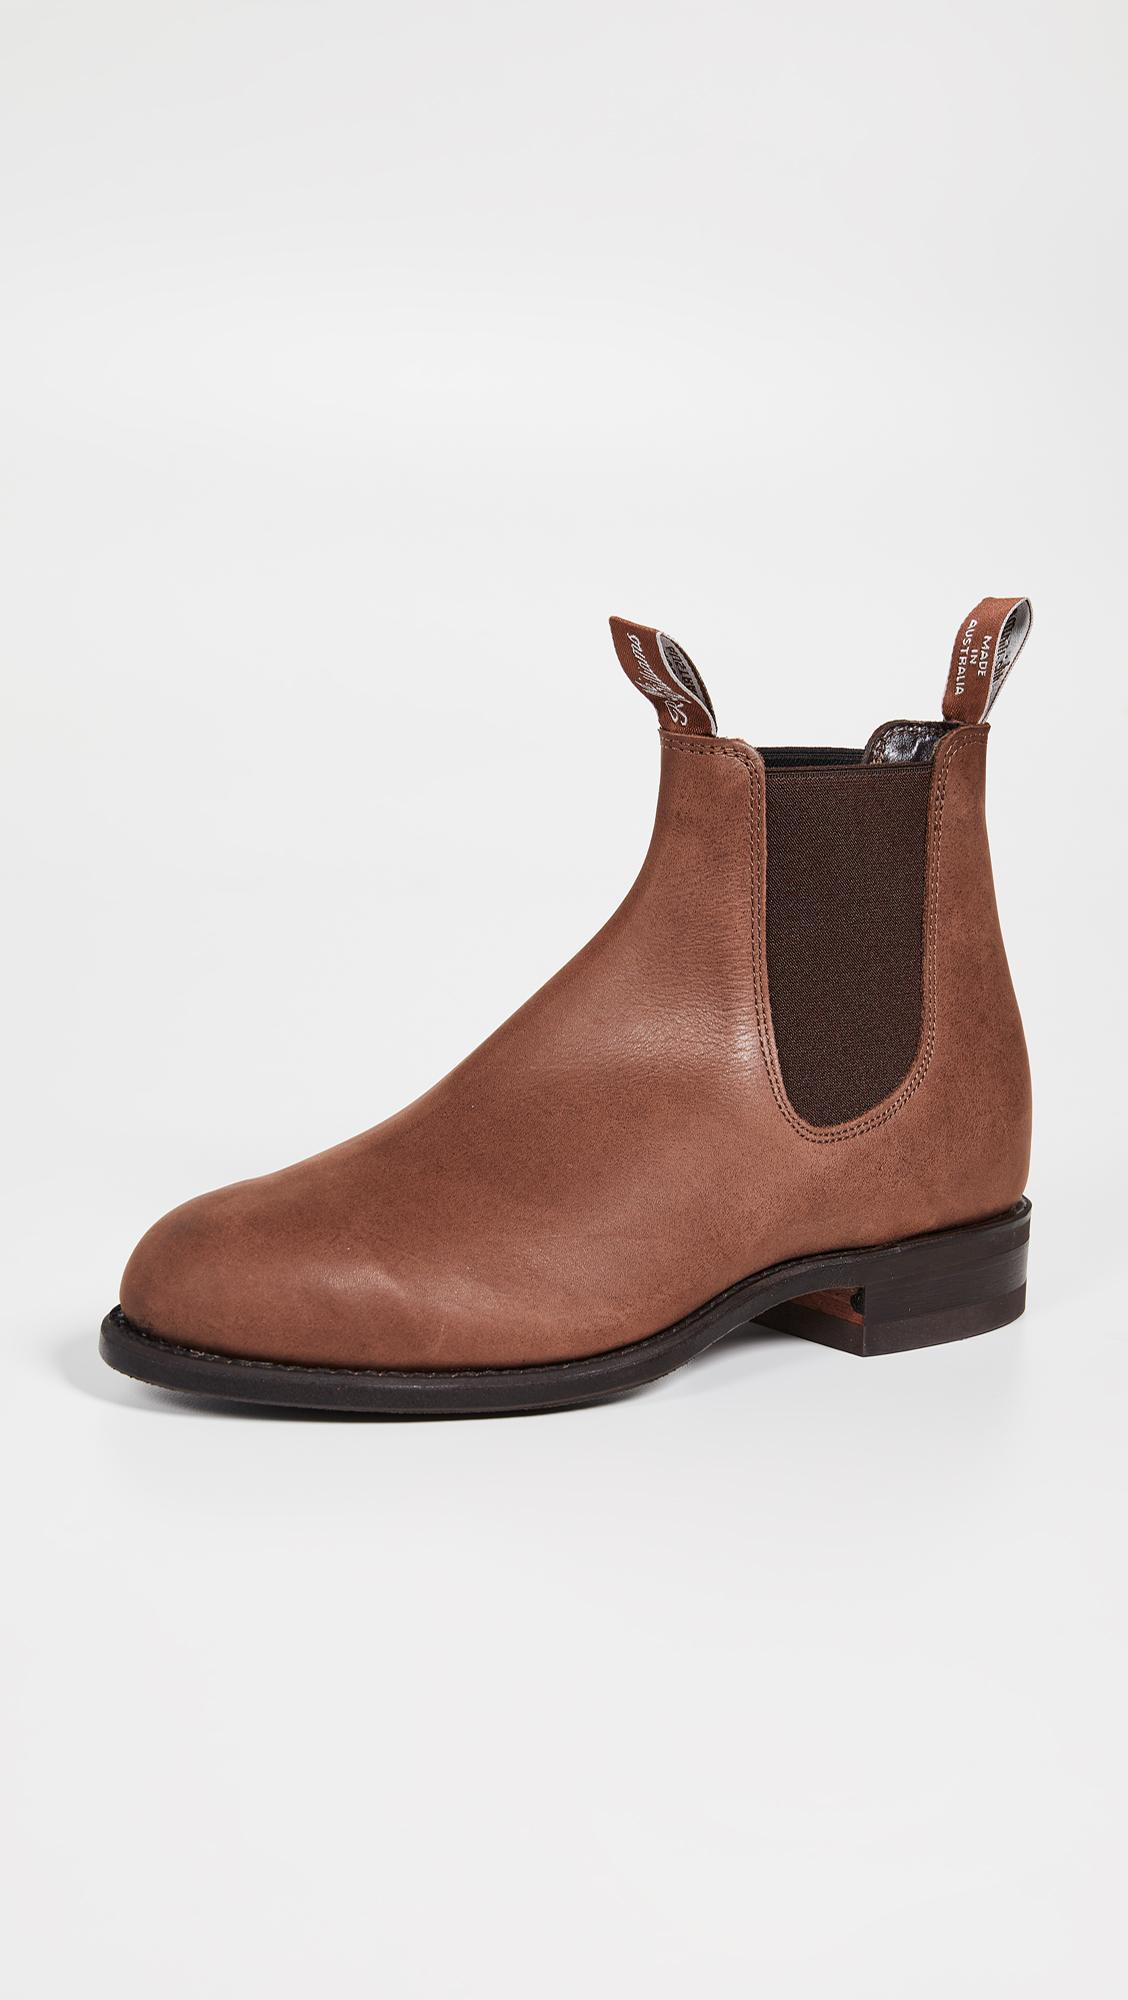 rm williams comfort turnout boots review